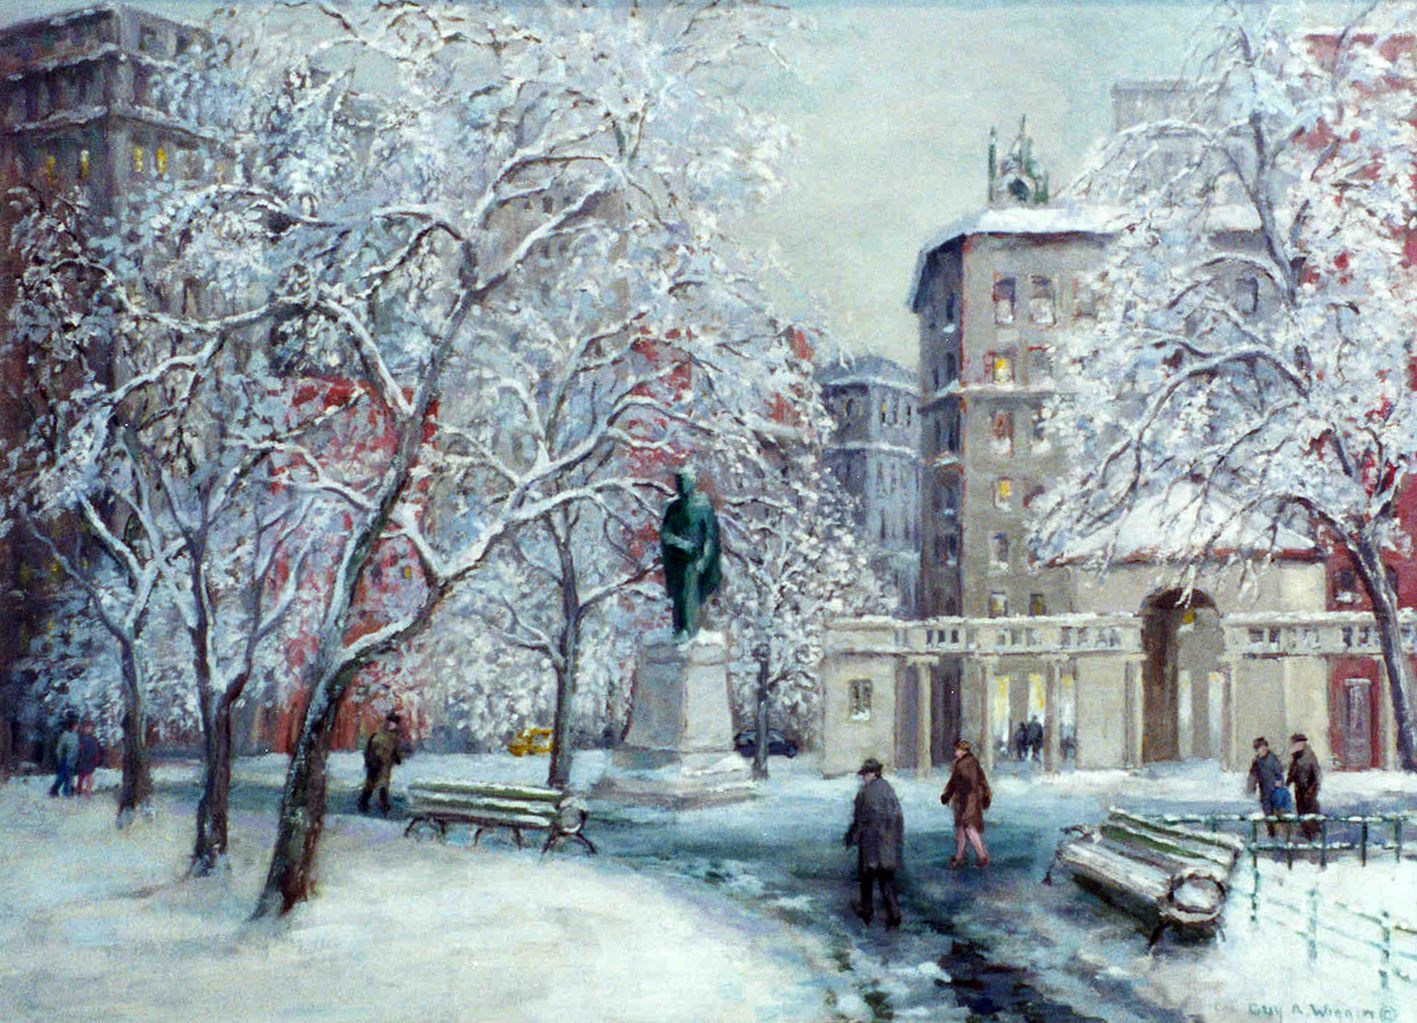 "Guy Wiggins, First Snowfall of the Season-Union Square Looking North. Oil on canvas, 22"" x 28"", 1998"